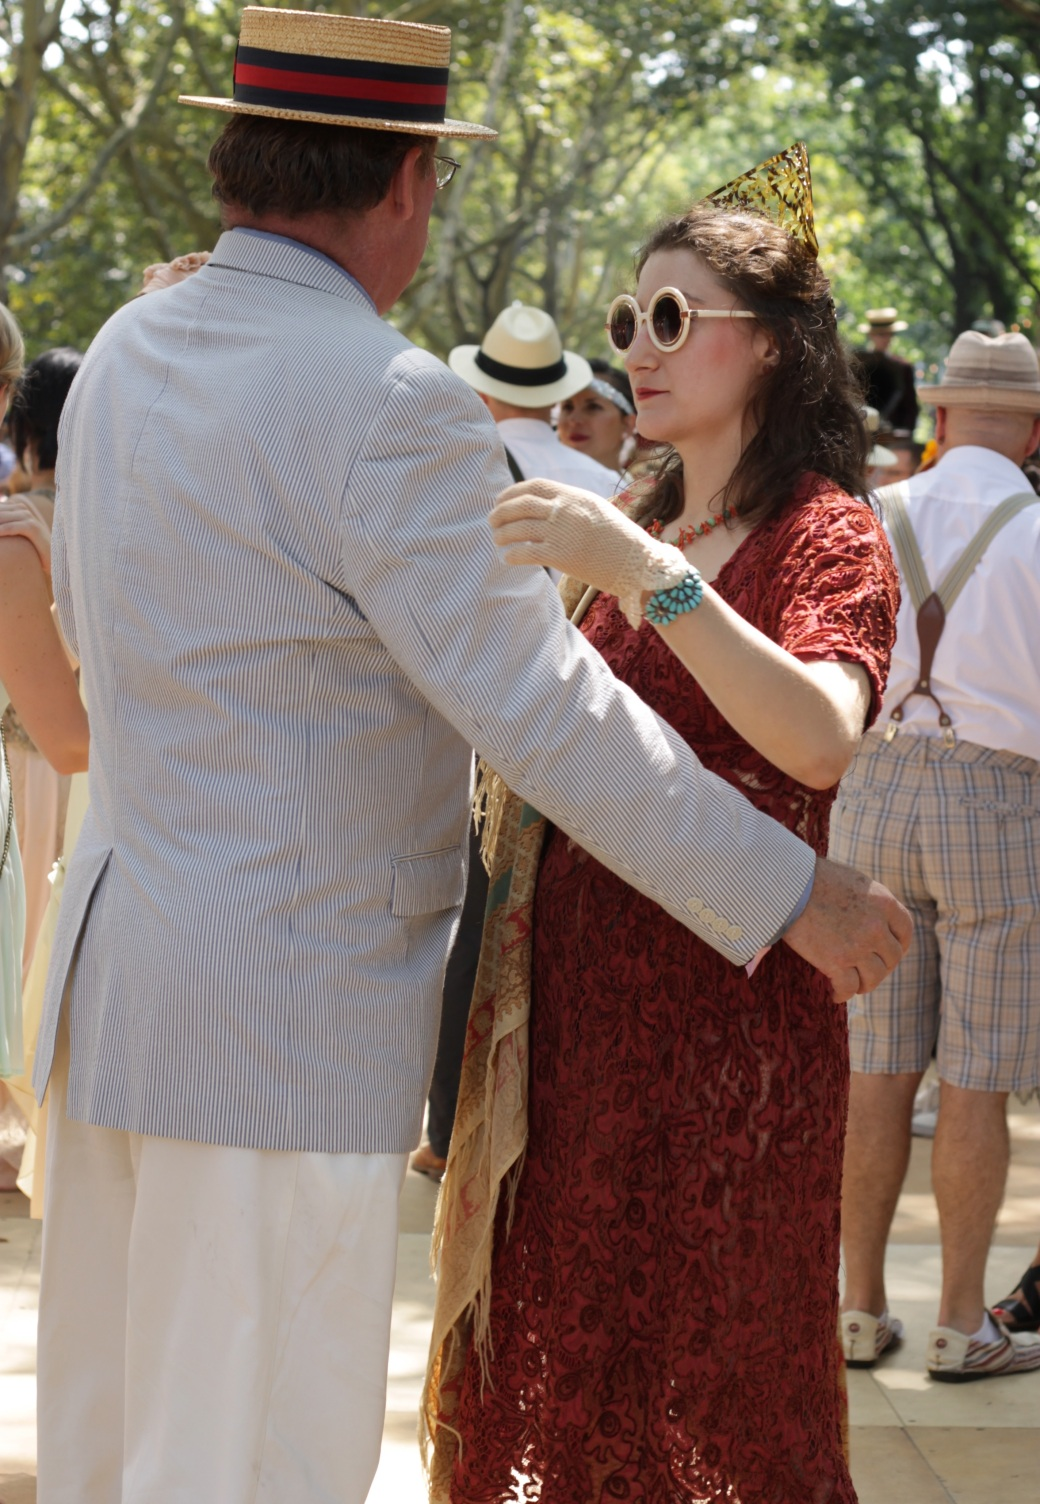 new york city governors island jazz age lawn party august 17 2014 34